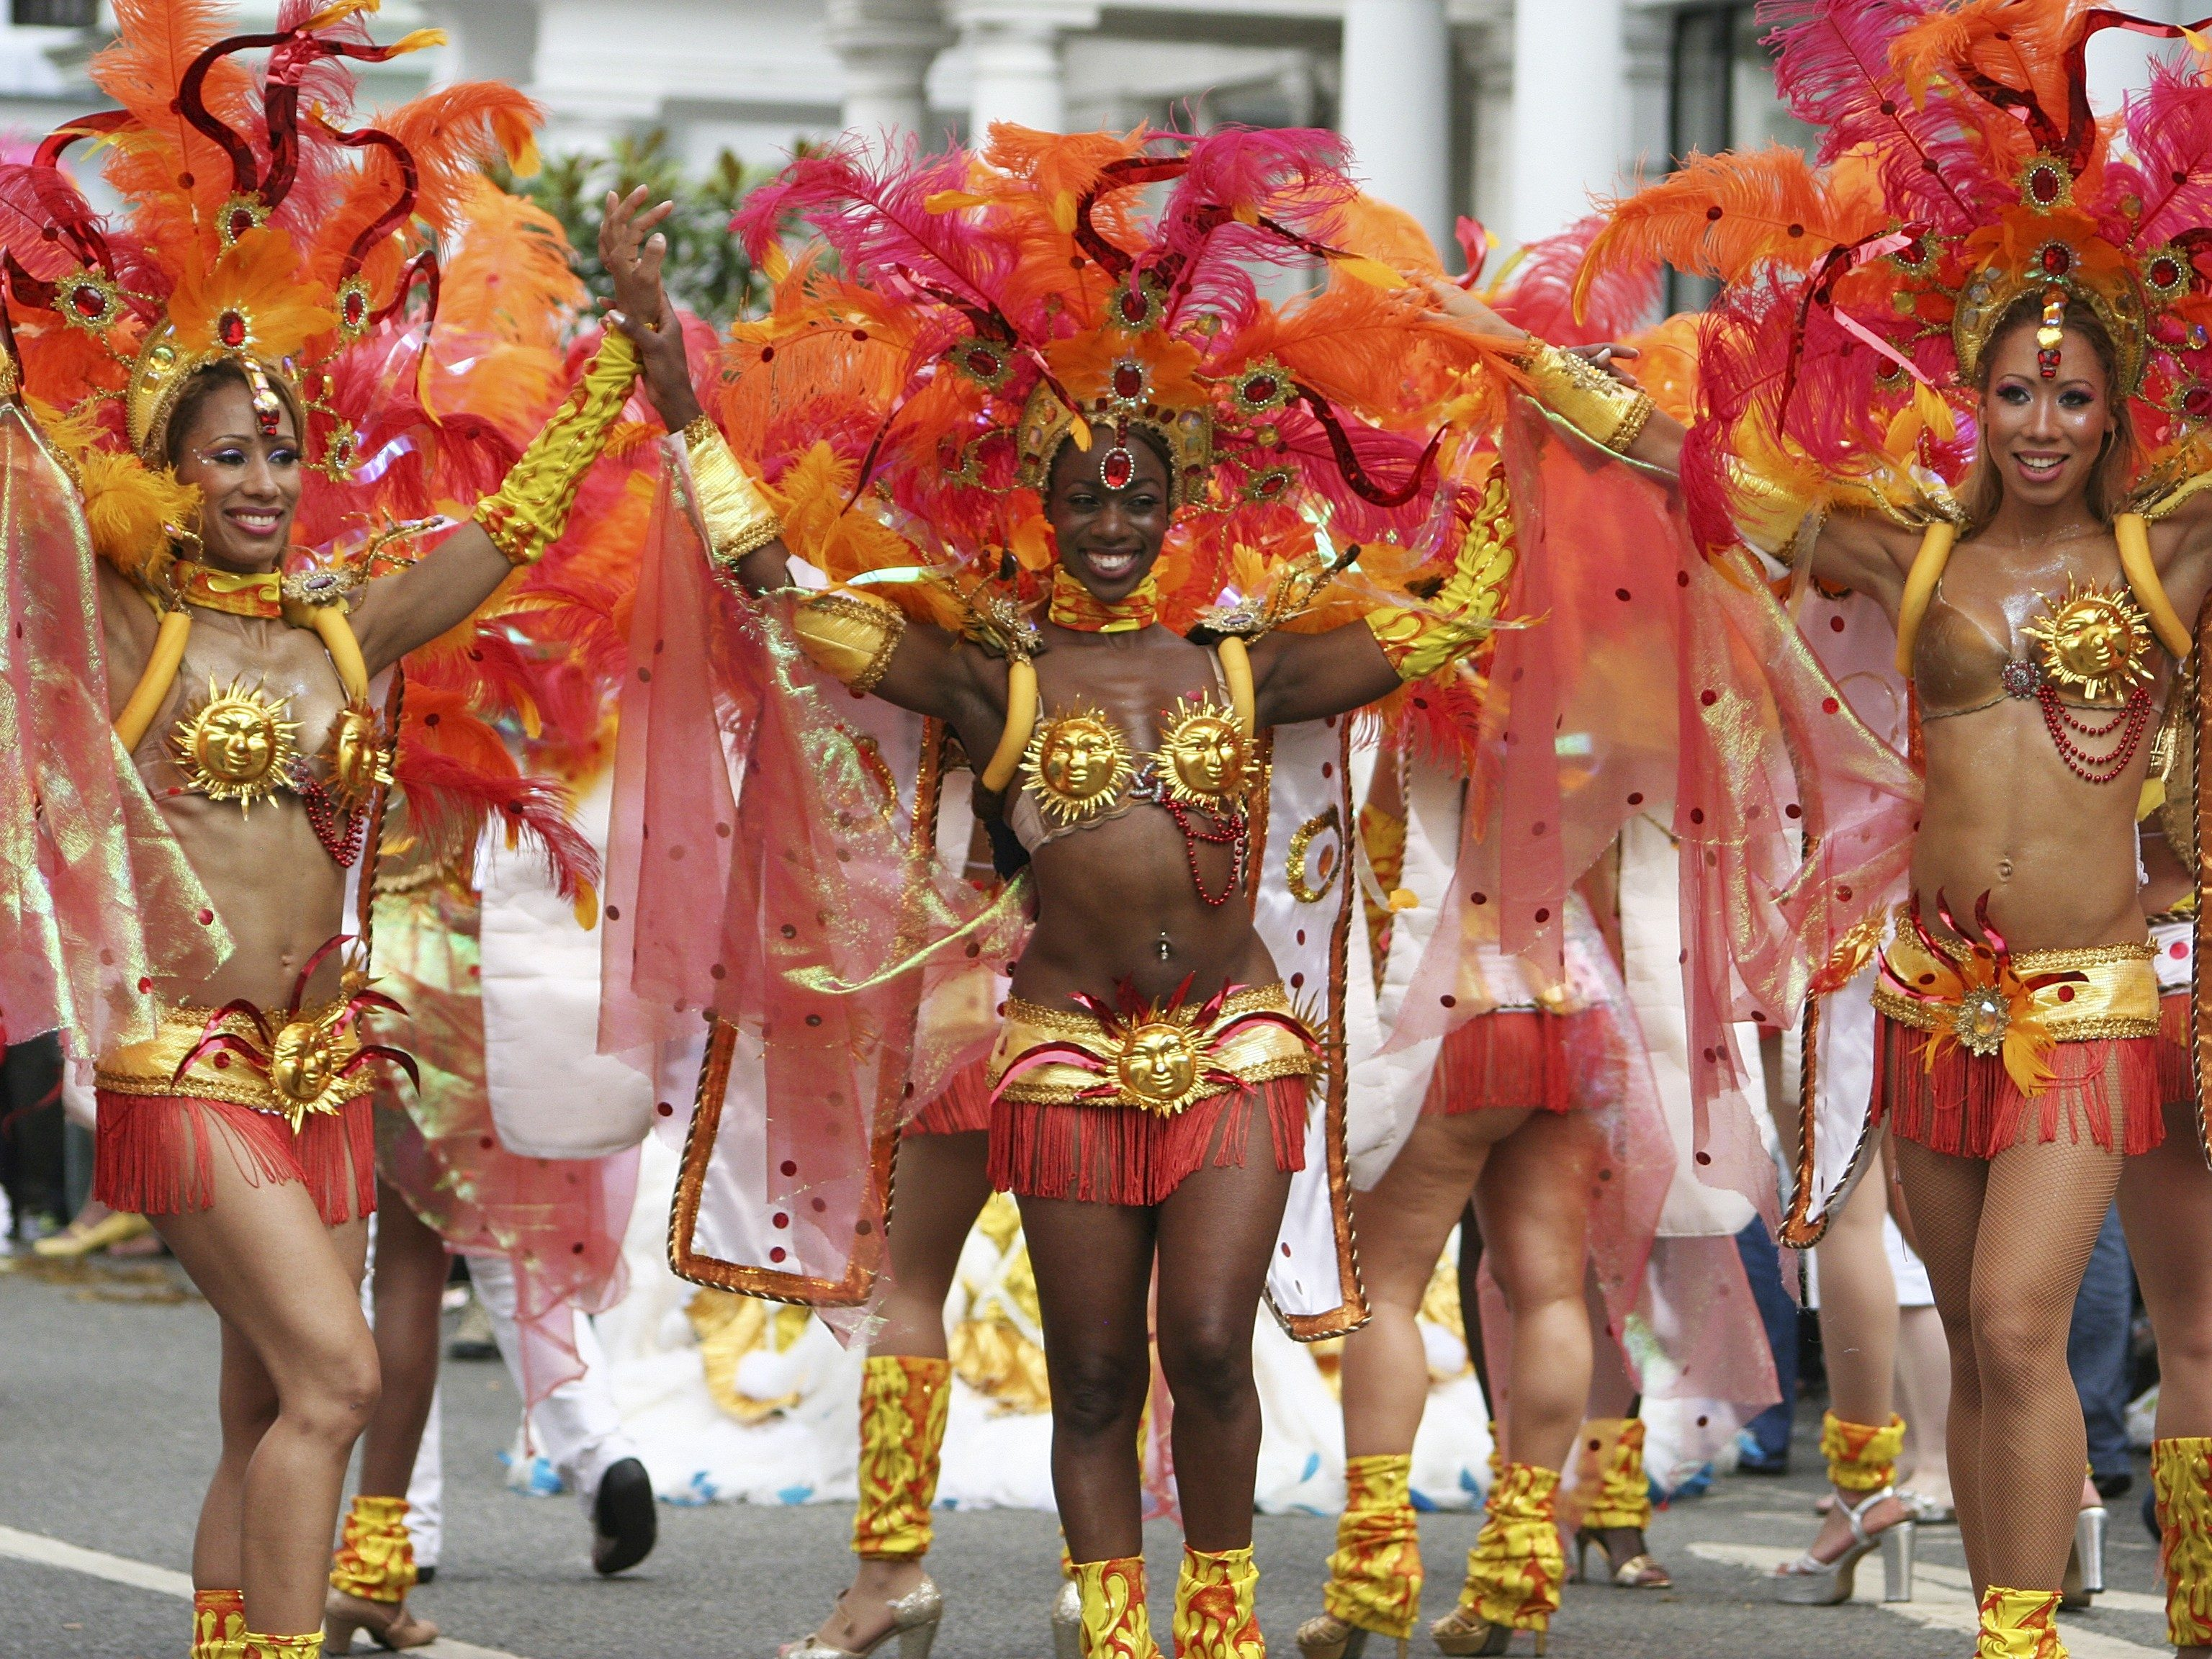 London attractions: Notting Hill Carnival